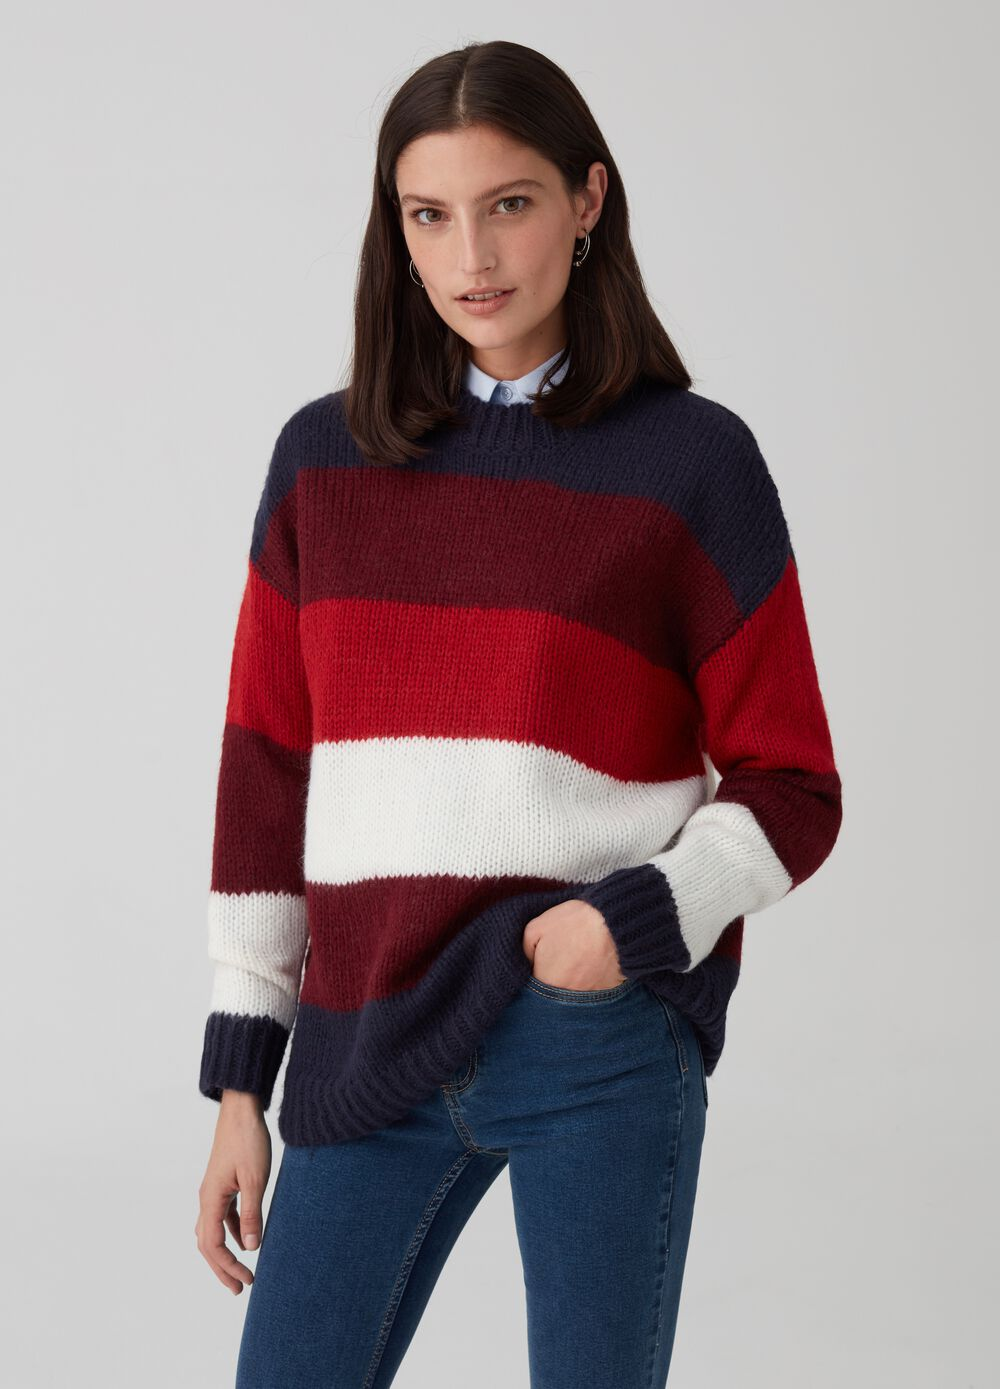 Knitted top with stripes and ribbing